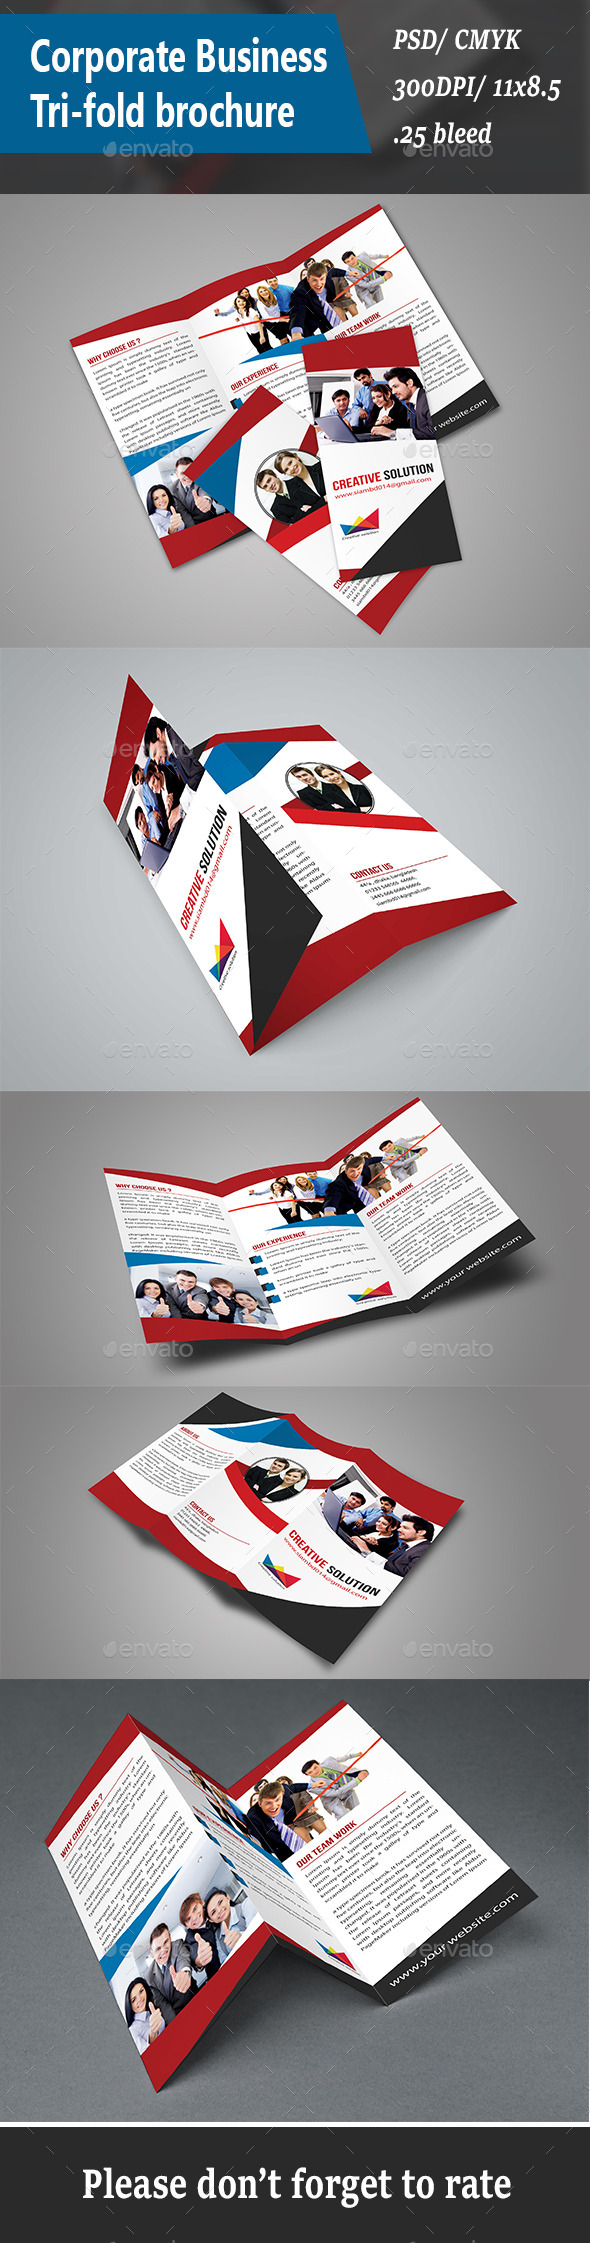 Corporate Business Tri-fold Brochure - Brochures Print